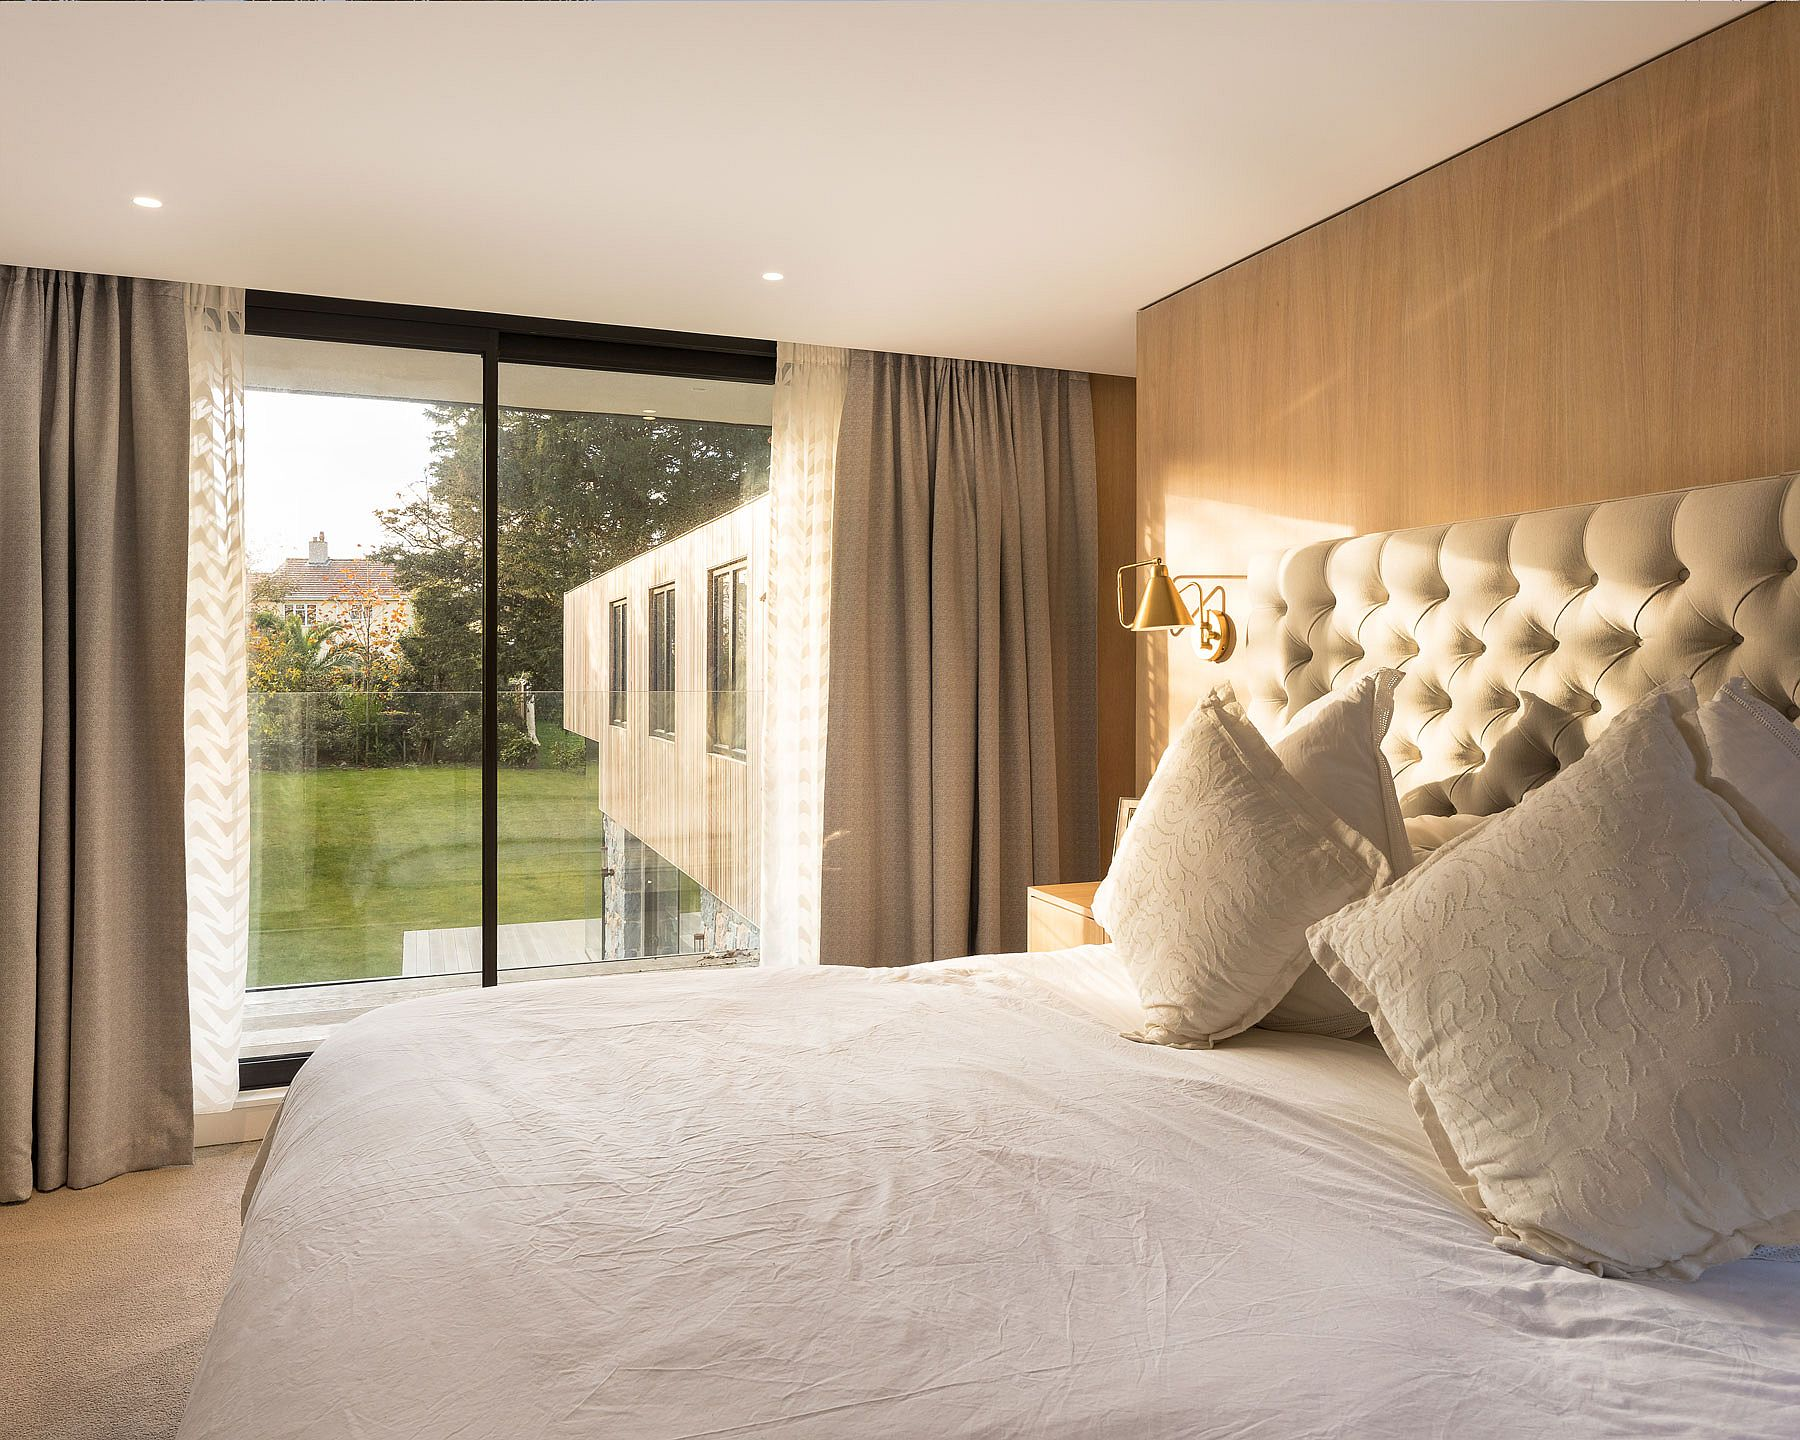 Bedroom-of-the-British-home-flooded-with-natural-light